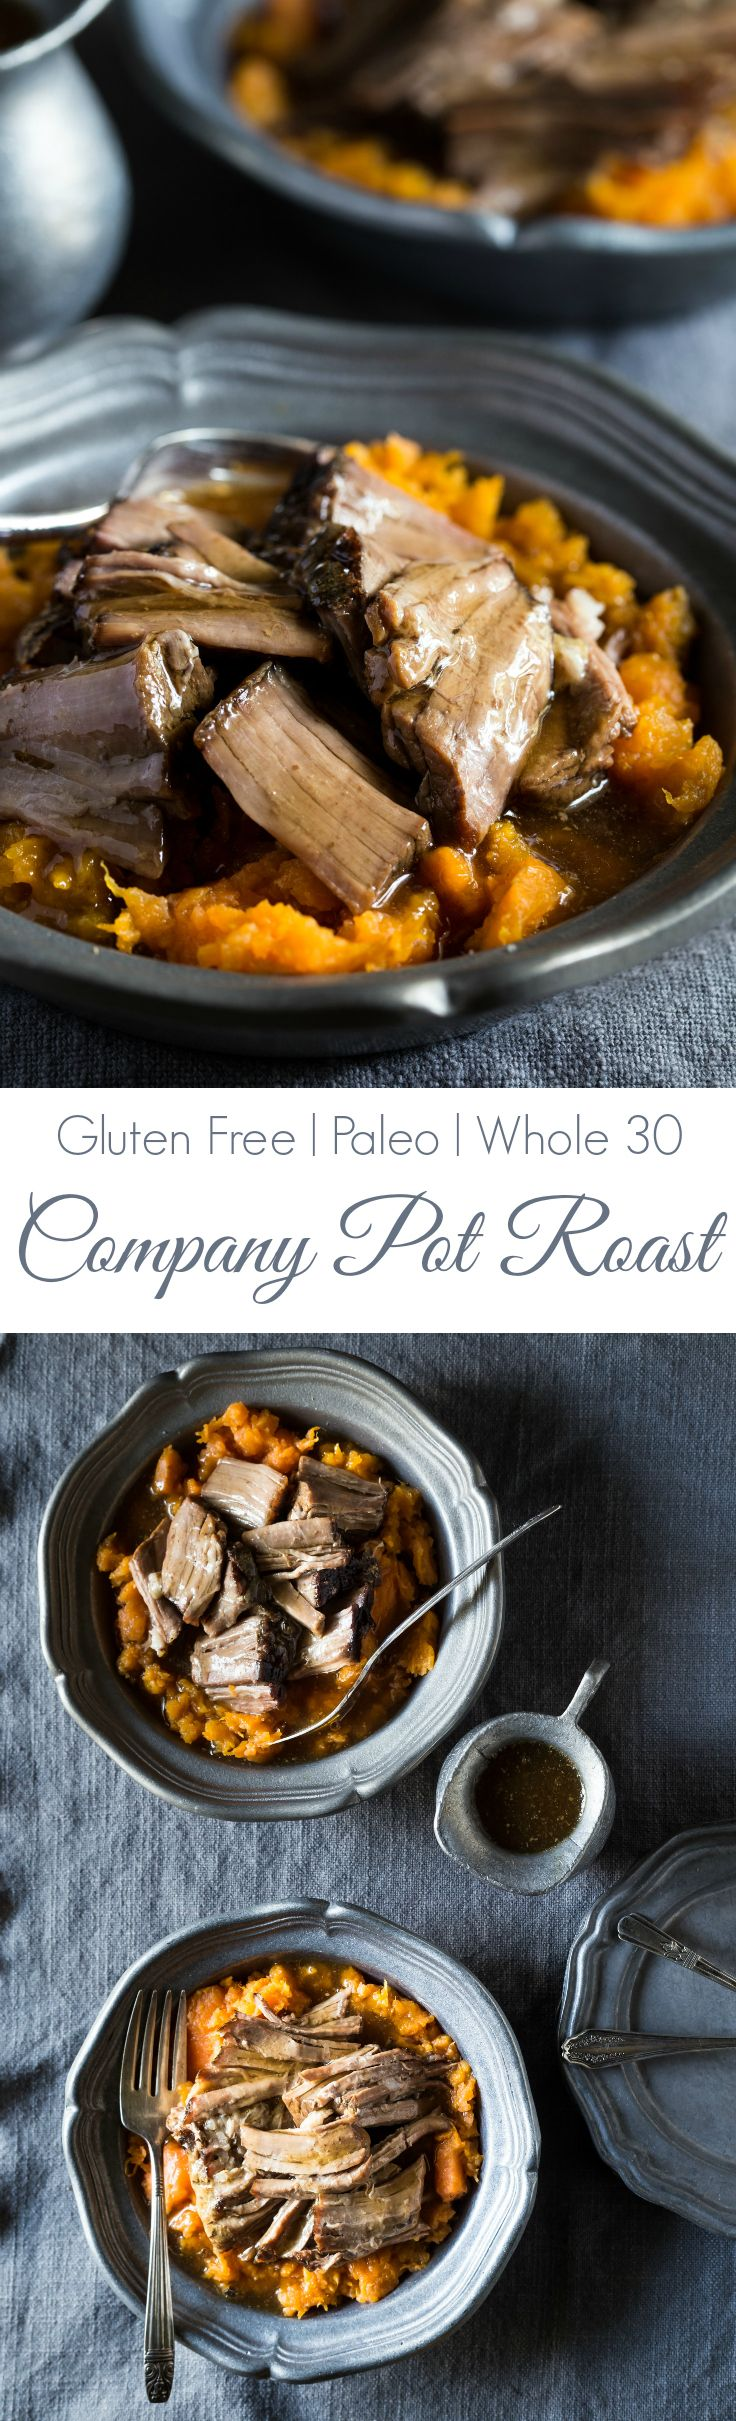 This Company Pot Roast is the one of the BEST I've ever tasted! It's so easy to make and the slow cooker does all the work for you! | gluten free | paleo | whole 30 |sub out cornstarch